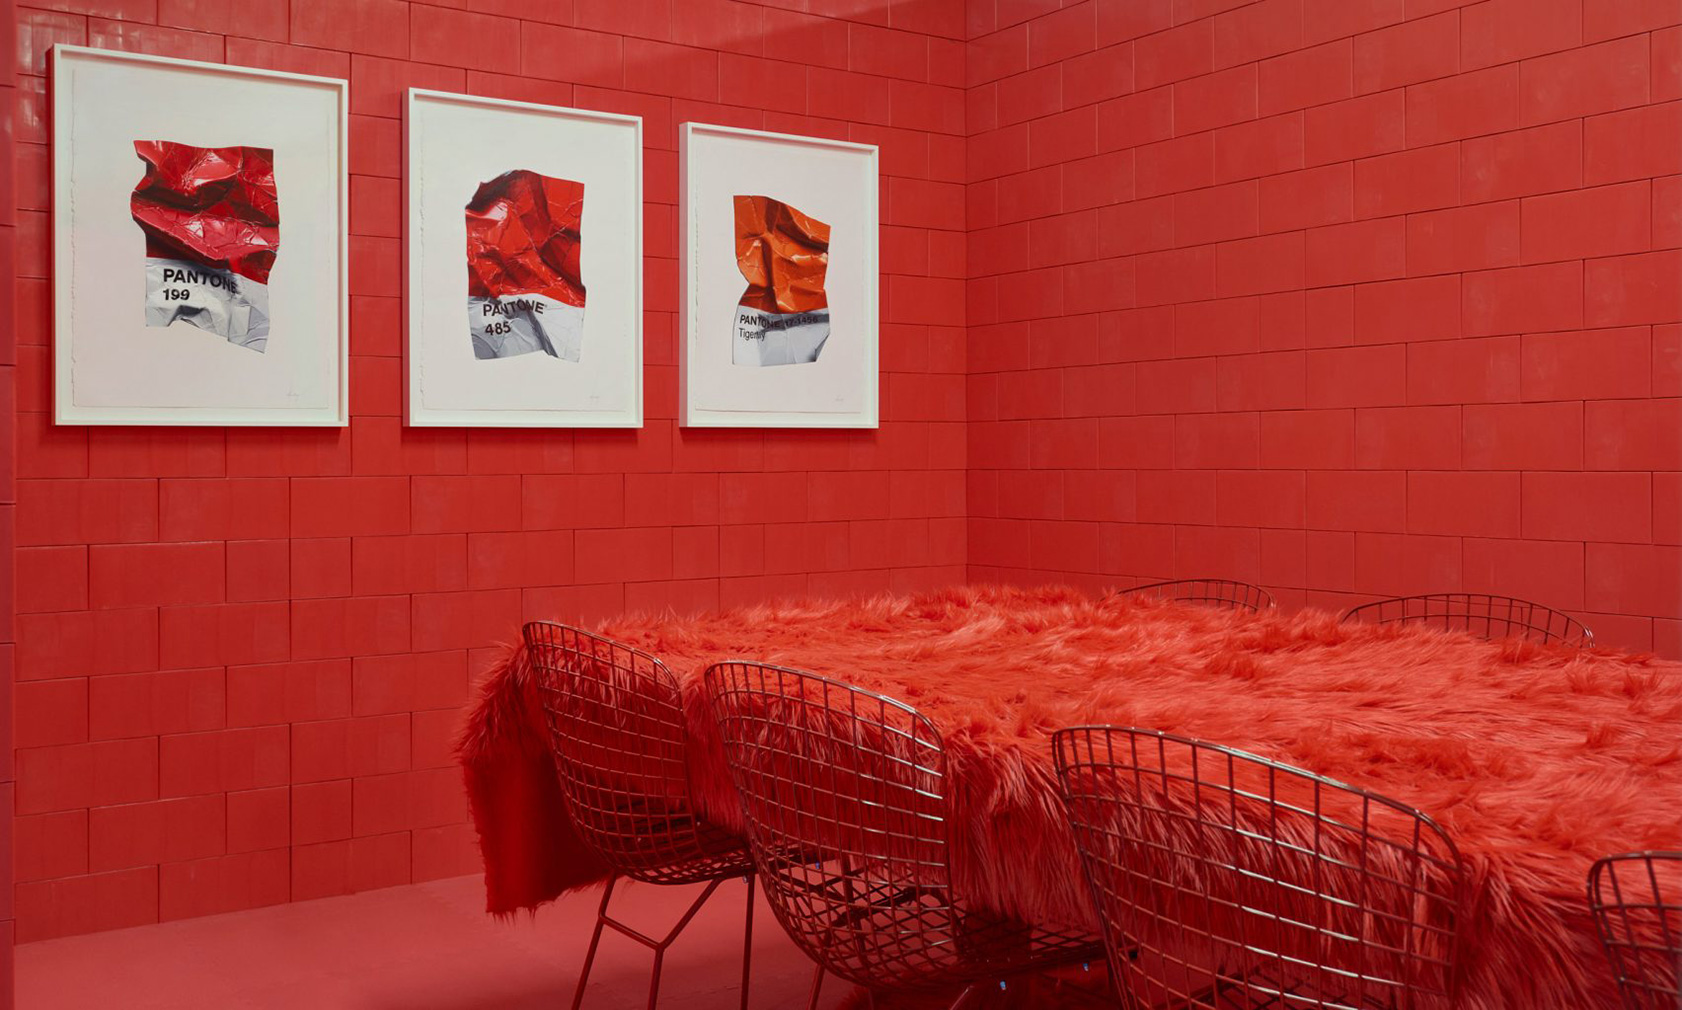 Artist Cj Hendry brings Pantone colours to life in this